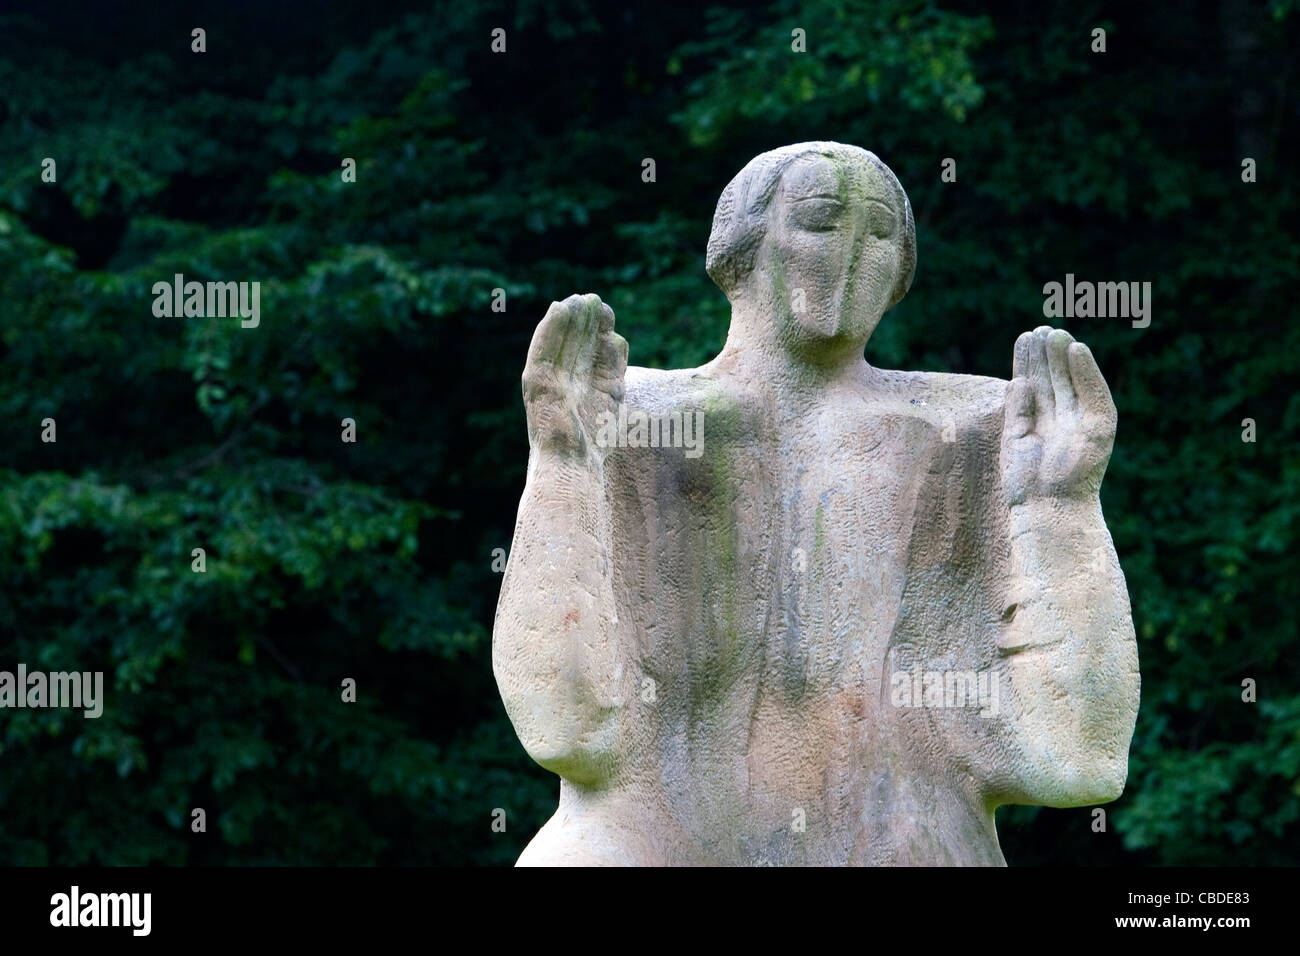 Calvary of the 21st century in Kuks, Czech Republic. 15 sand stone sculptures were were blessed on July 4, 2008 - Stock Image